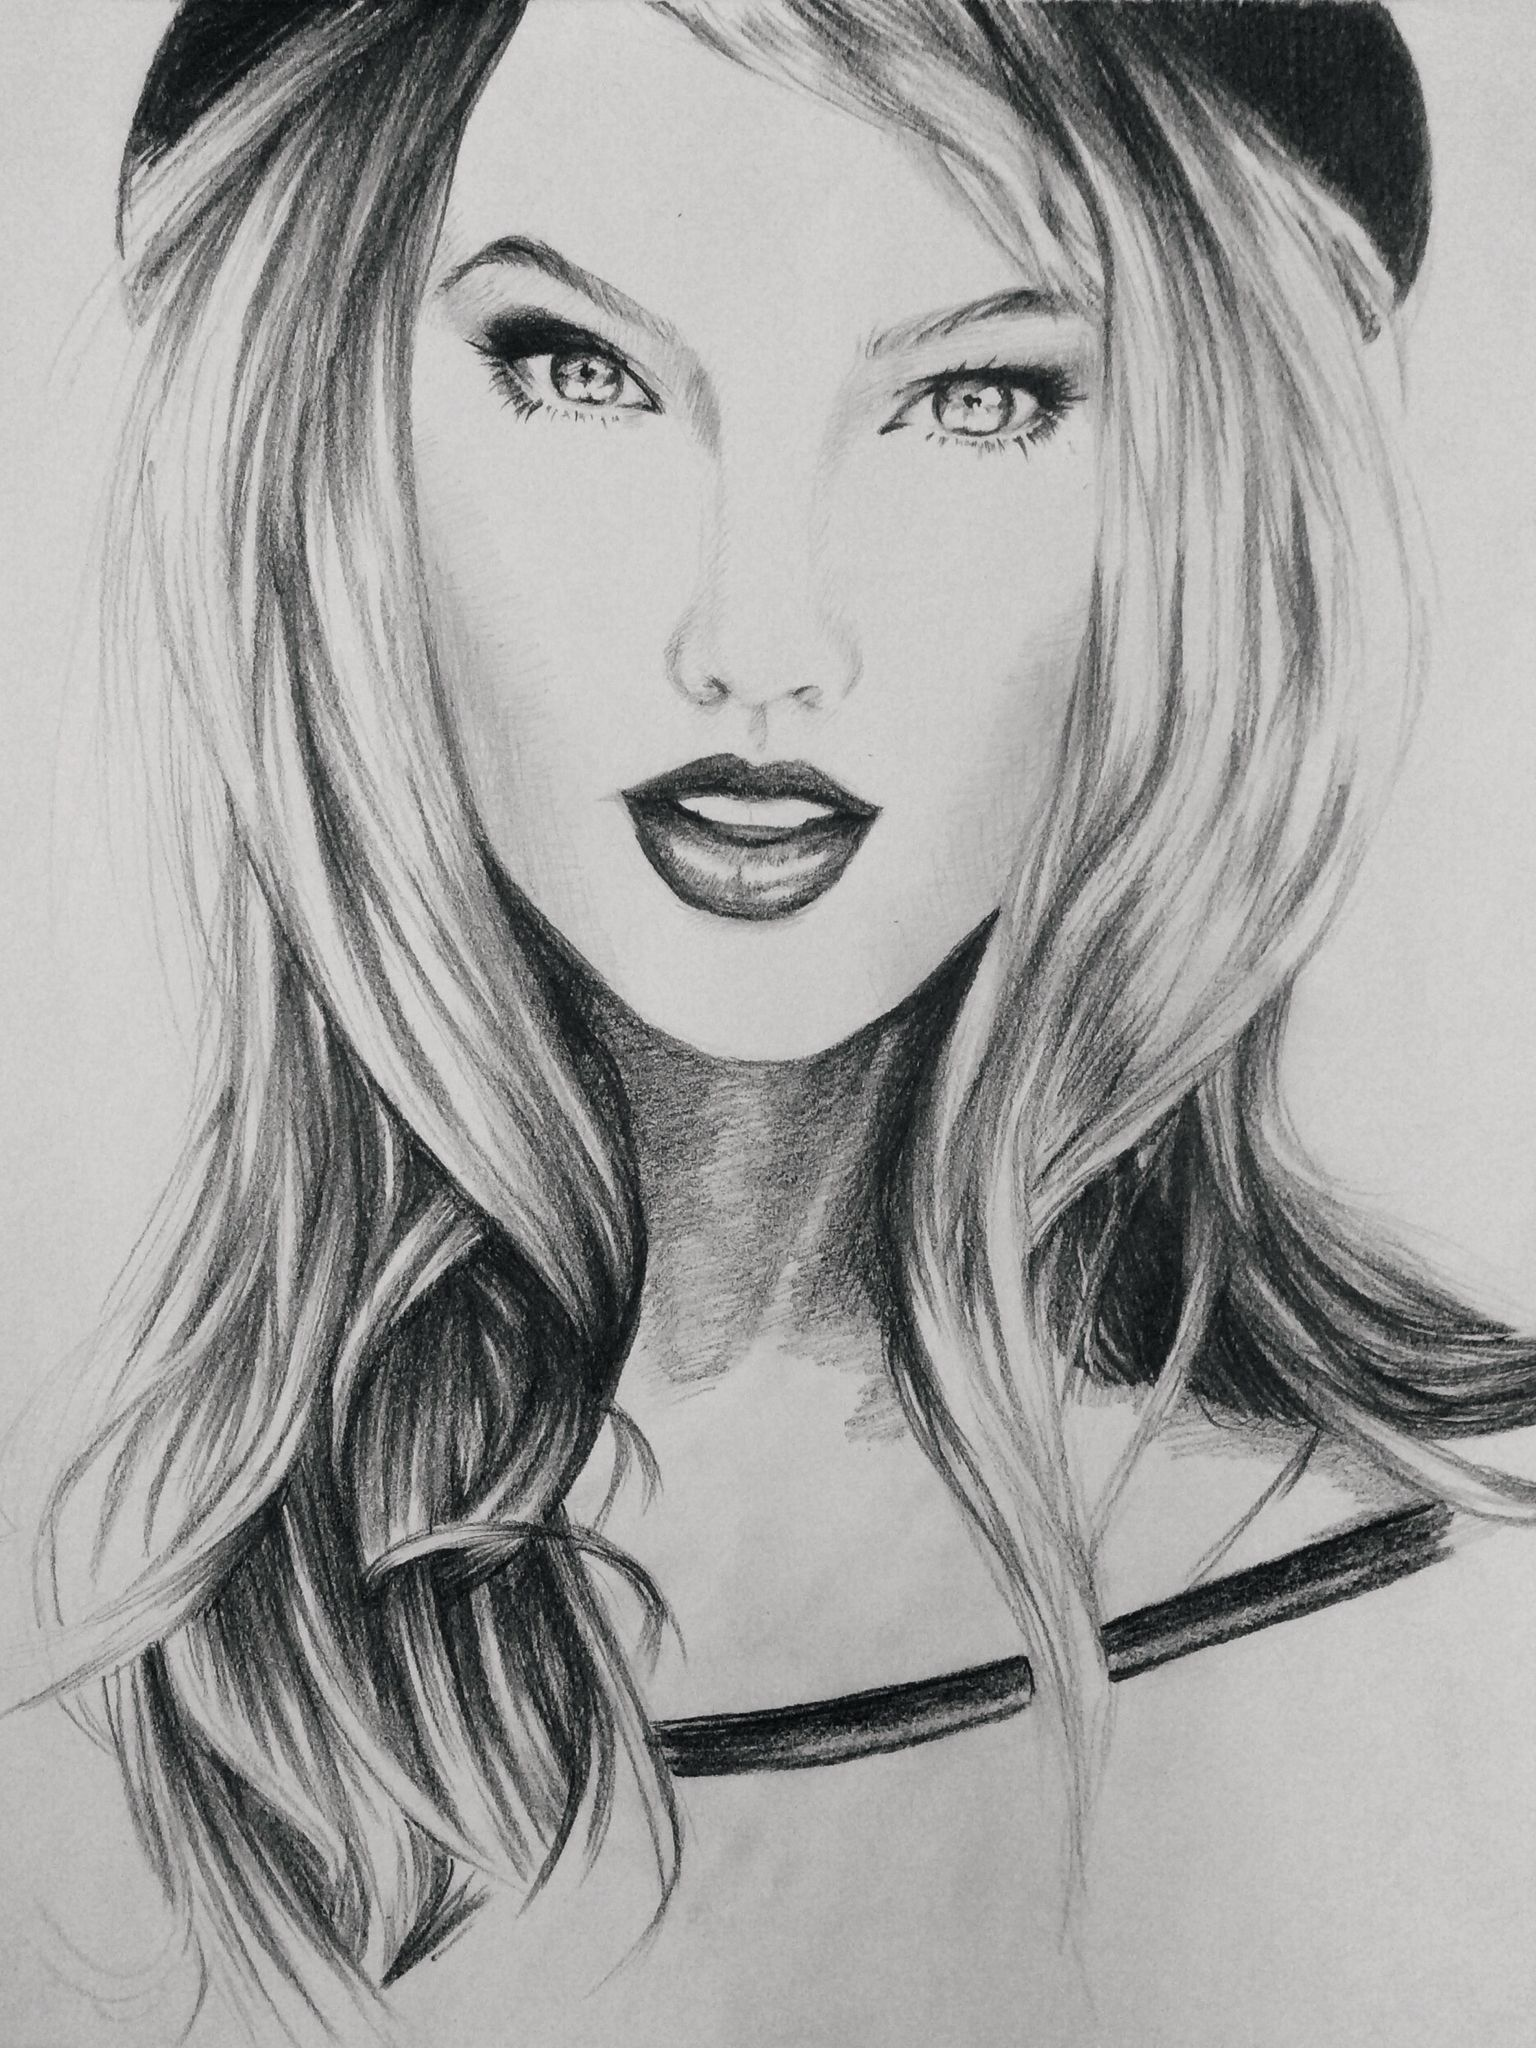 Taylor swift portrait in pencil drawing art taylorswift sketch